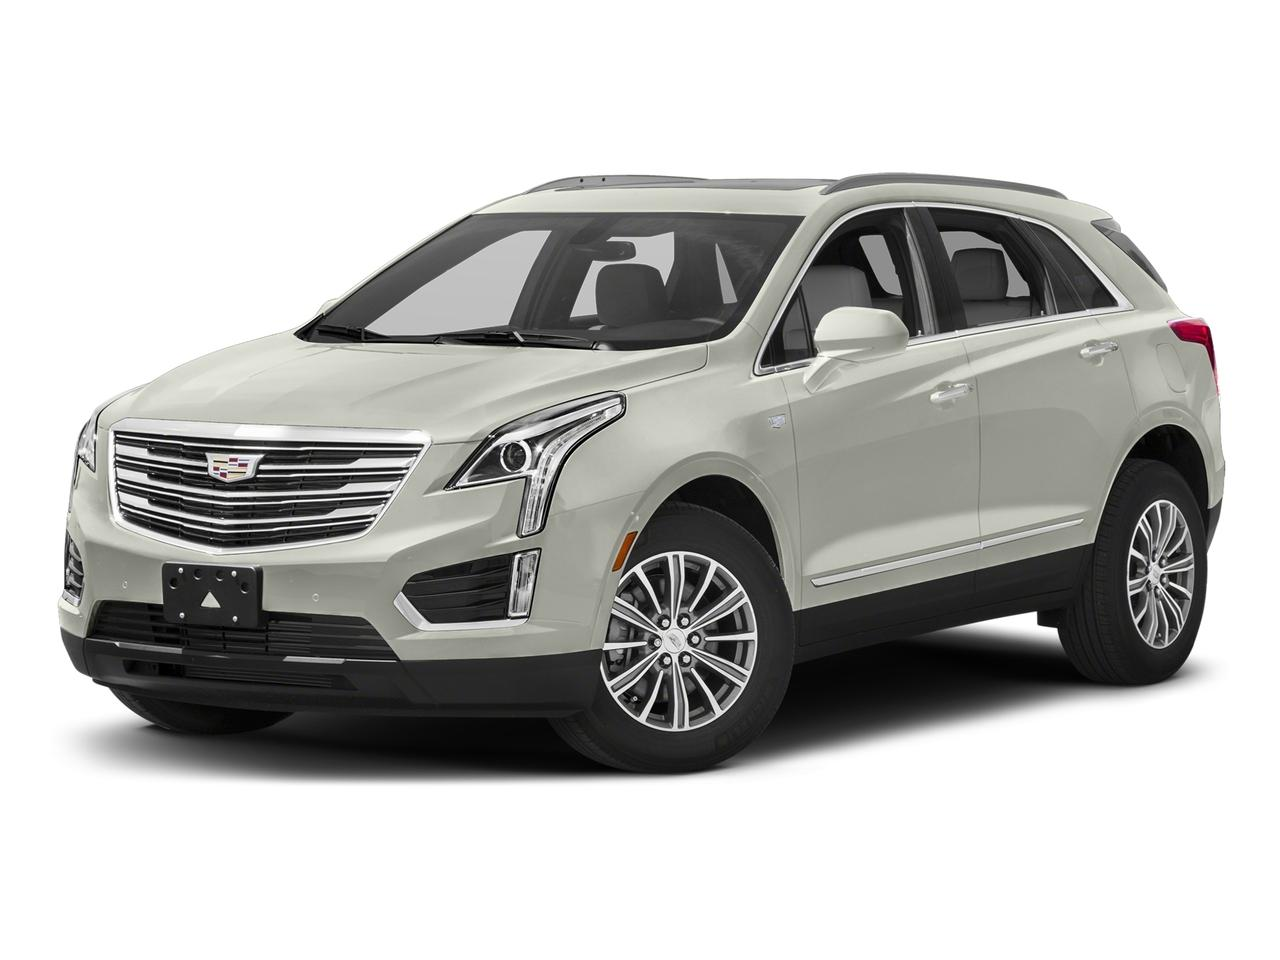 2017 Cadillac XT5 Vehicle Photo in Annapolis, MD 21401